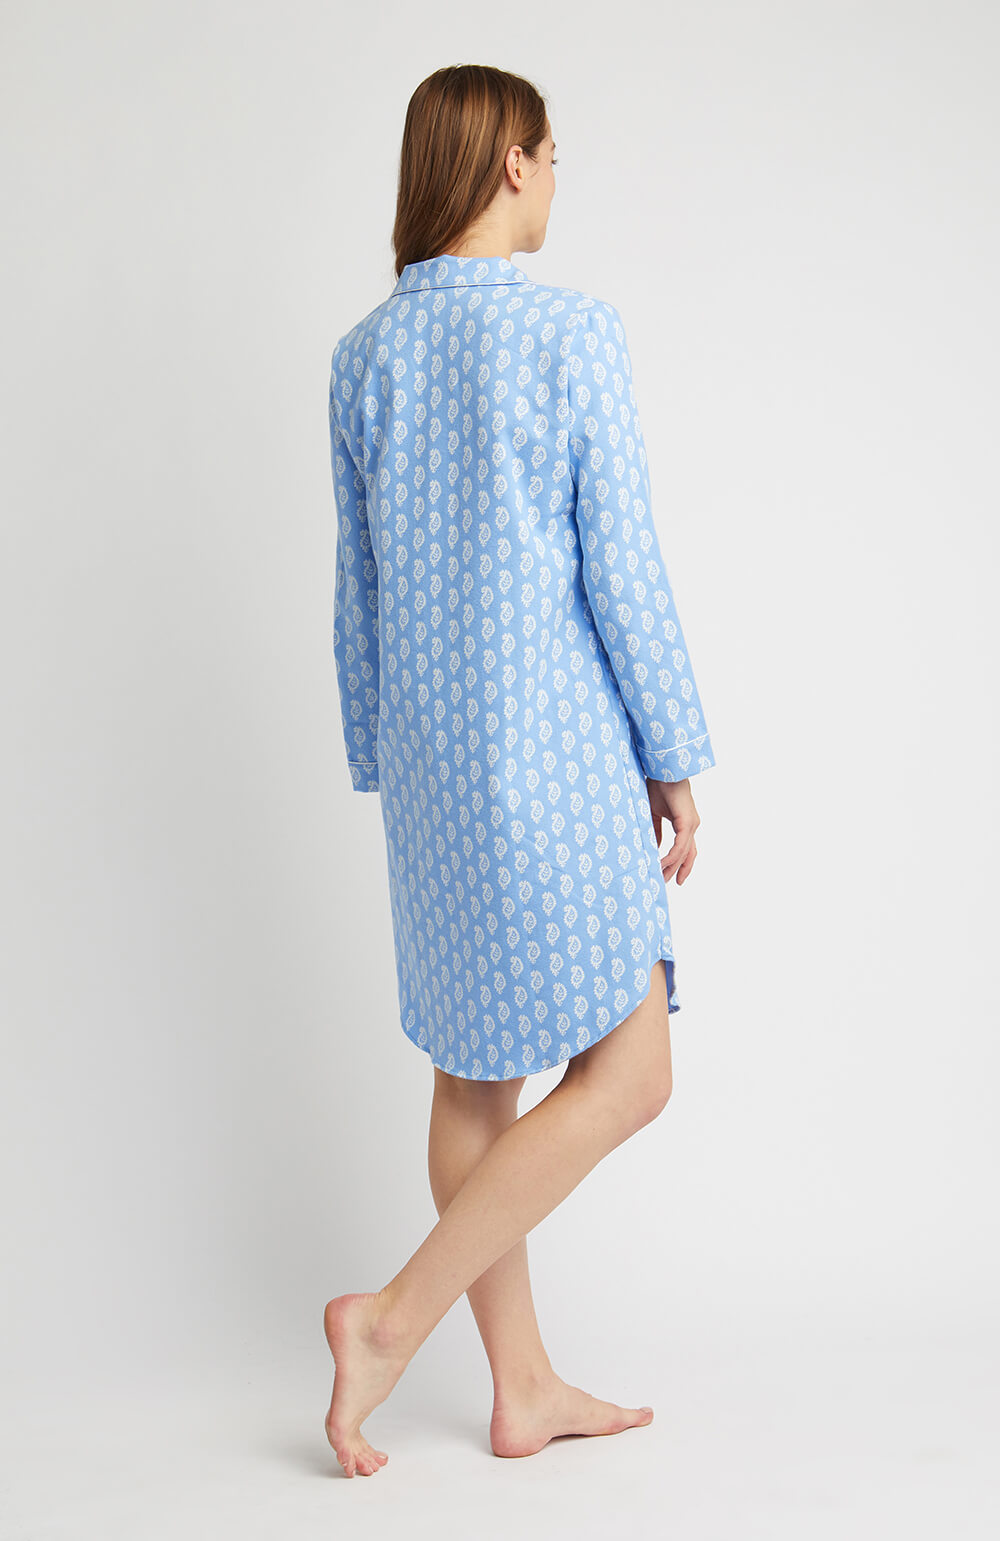 Brushed Pastel Nightshirt (blnf) - Blue Paisley | Bonsoir of London